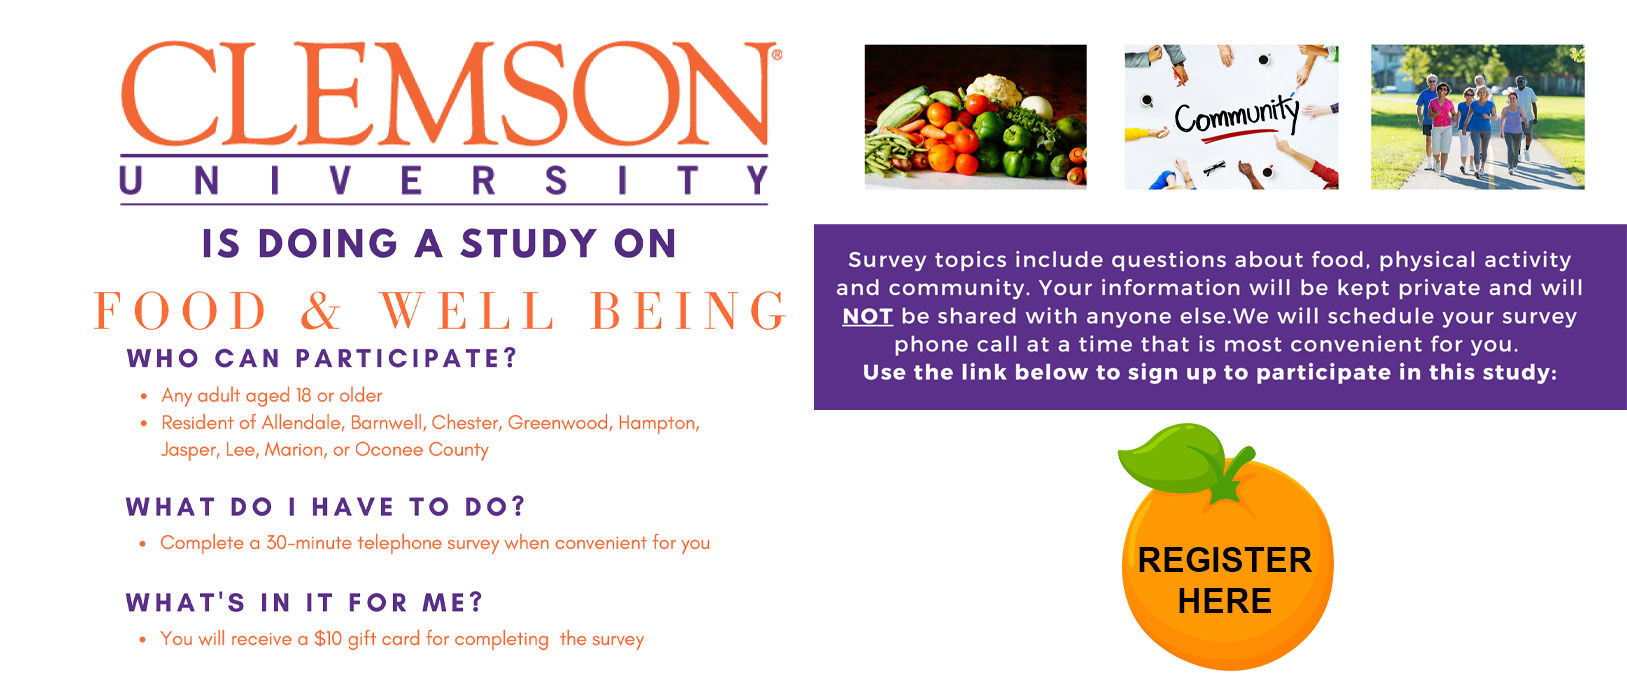 Clemson Univesity is doing a study on food & Well Being.  Who can participate?  * any adult aged 18 or older * resident of allendale, barnwell,chester, greennwood, hampton, jasper,lee,marion, or oconee county. What Do ihave to do?  * Complete a 30-min telephone survey when convenient for you.  What's in it for me? * you will recieve a $10 gift card for completing the survey.